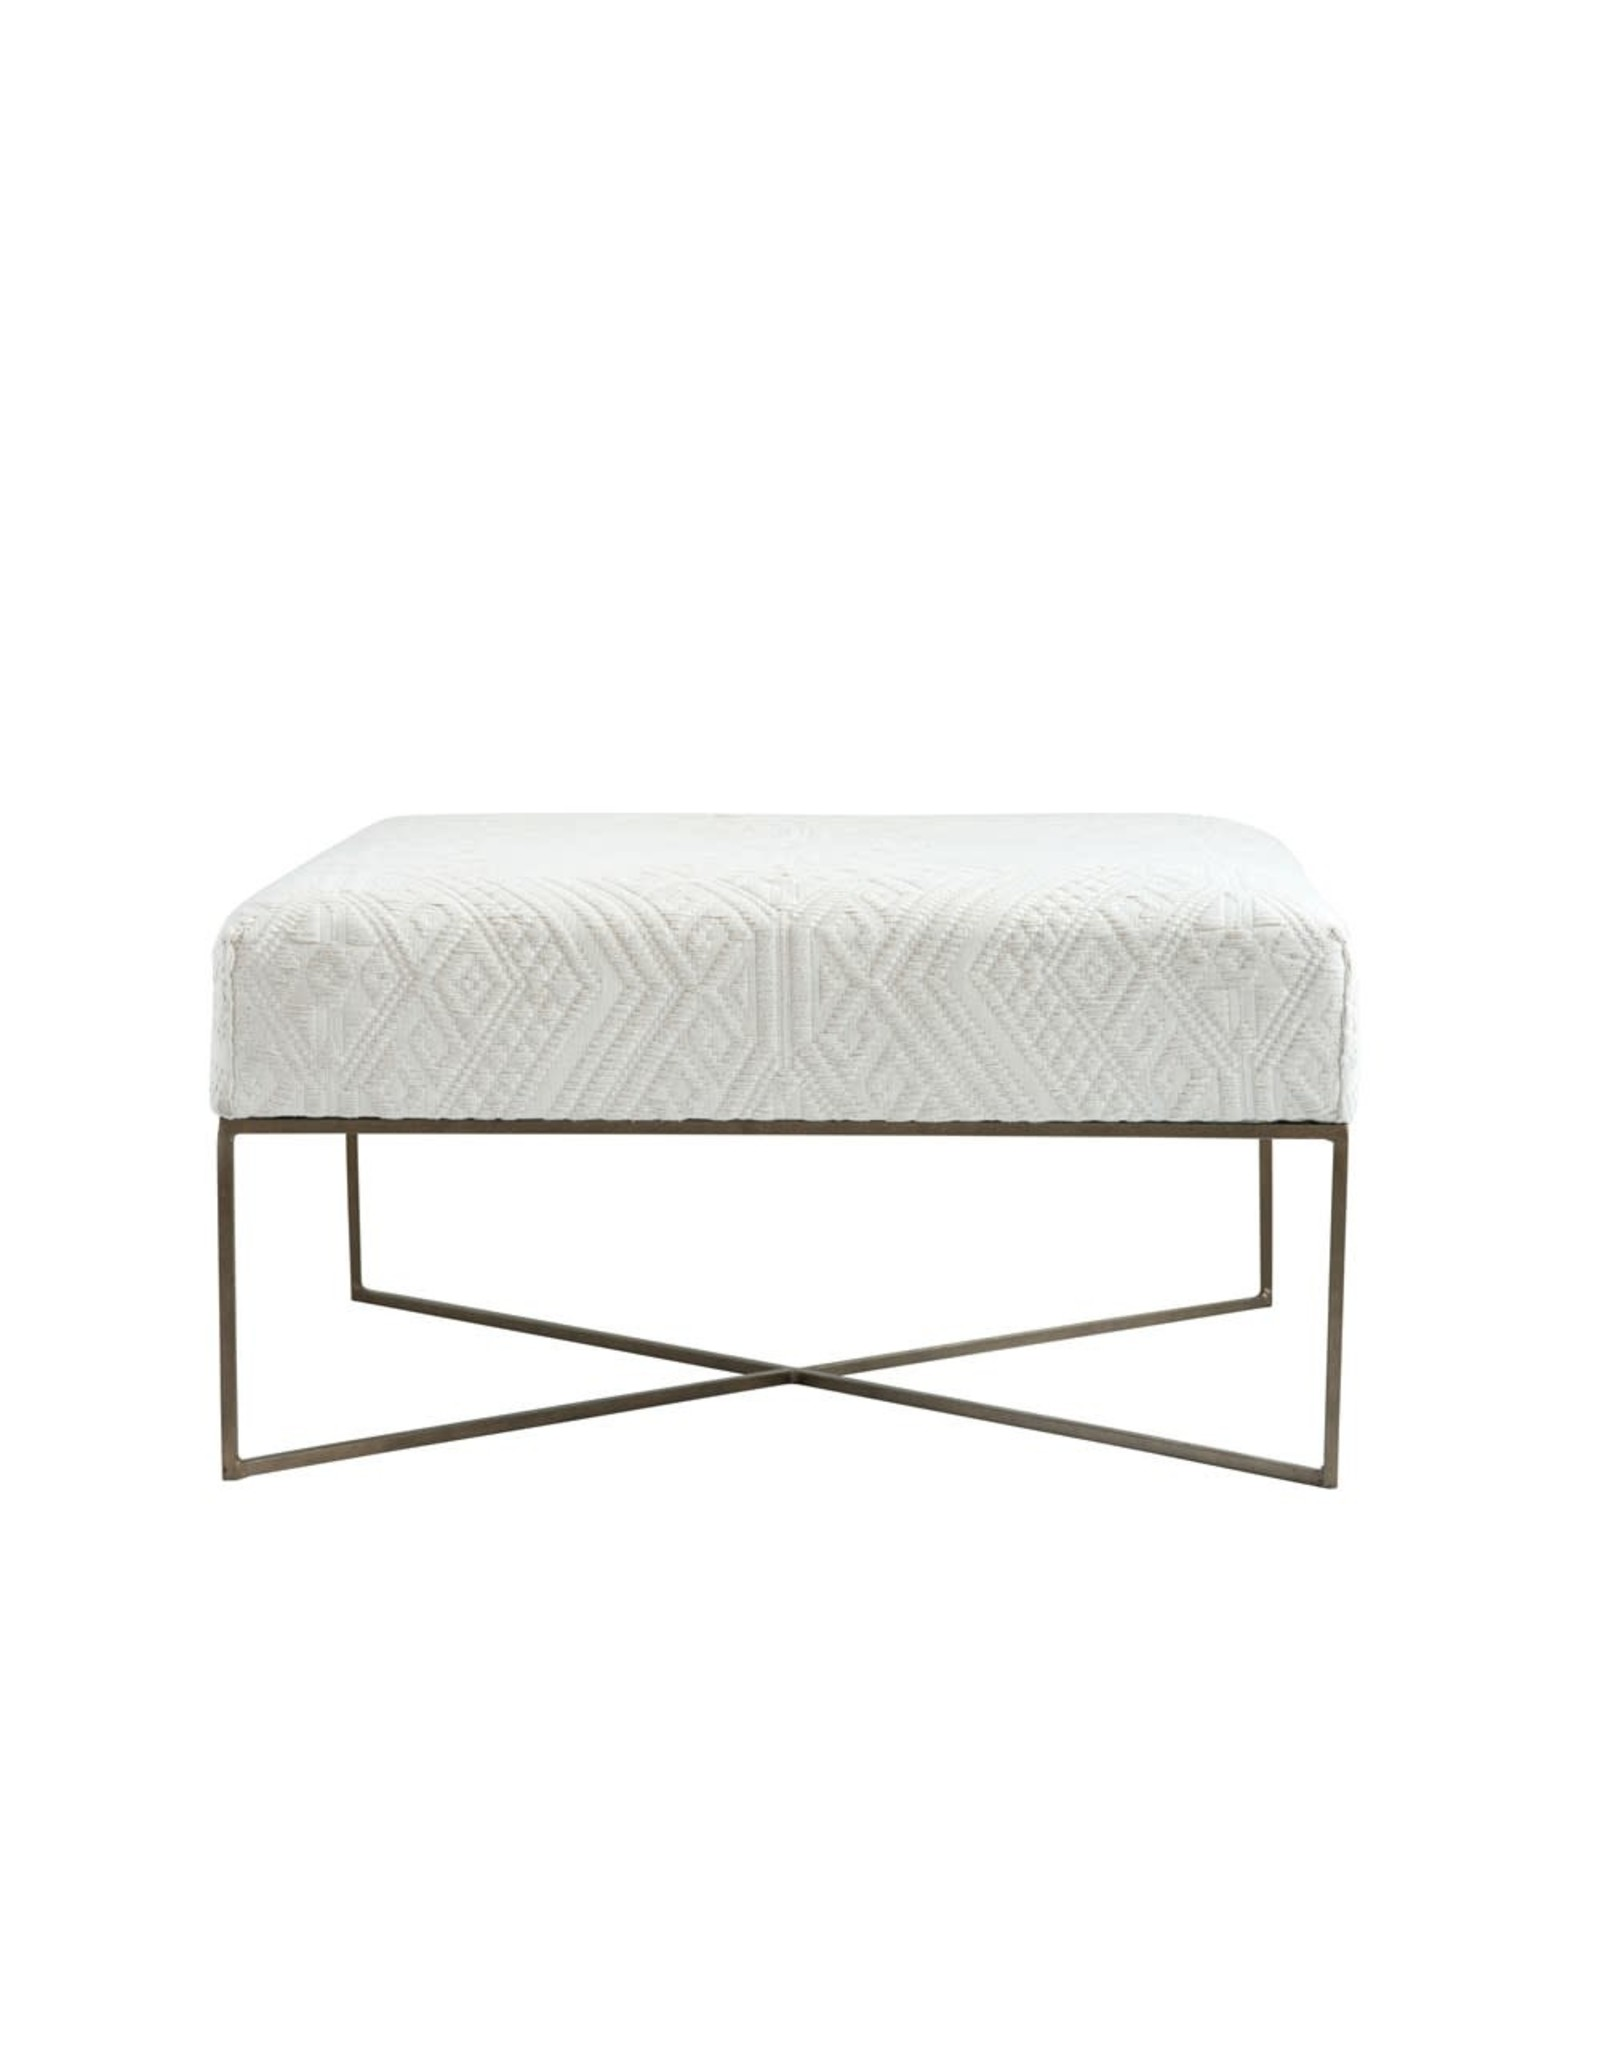 Creative Co-op Square Metal & Woven Upholstered Ottoman, Cream & Antique Brass Finish